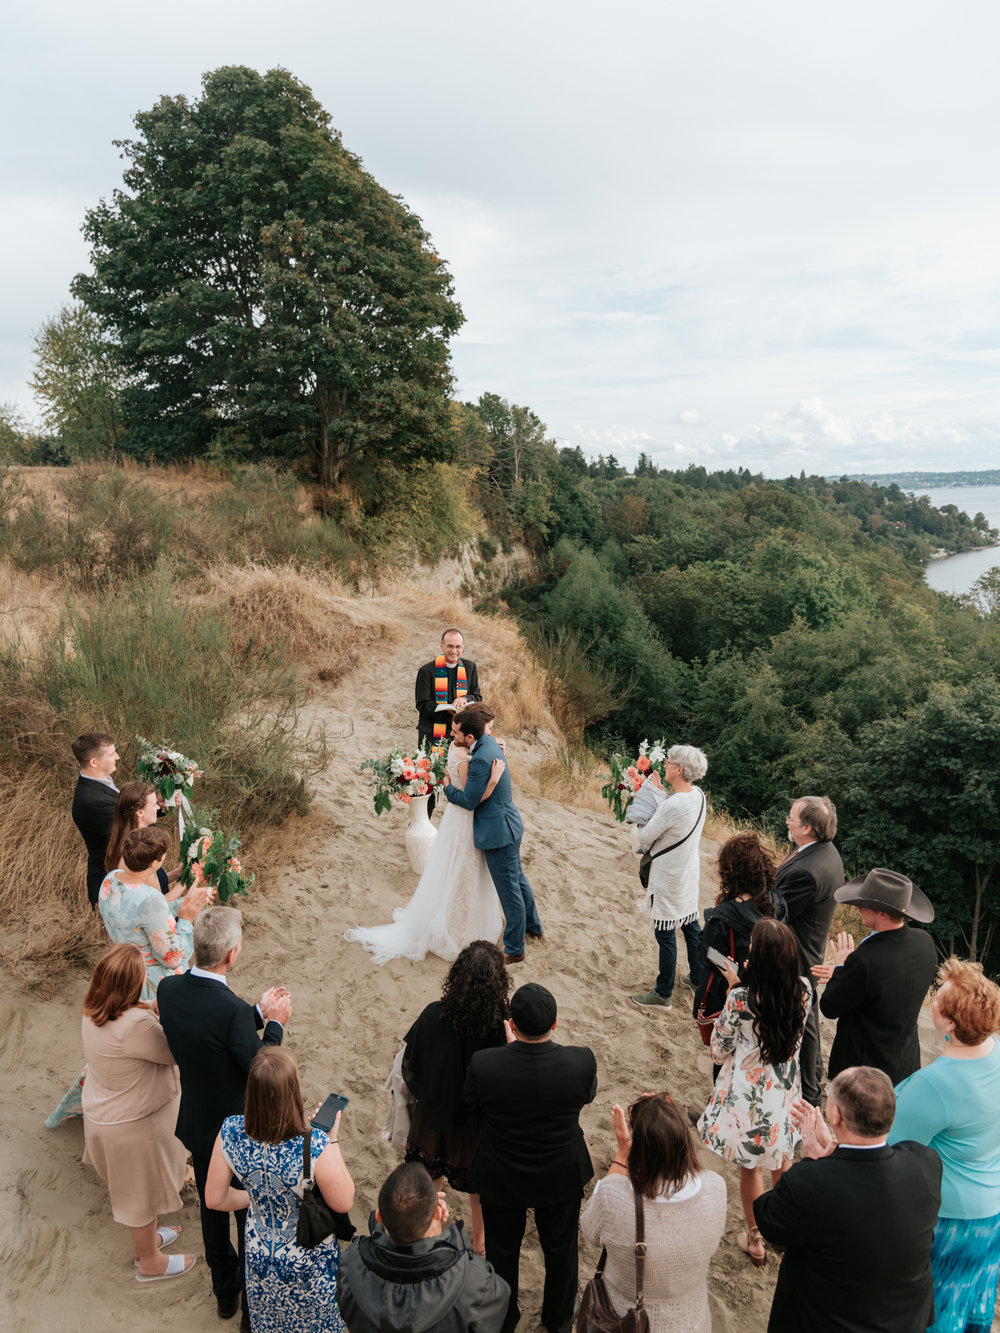 Stolen Glimpses Seattle Wedding Photographer at Discovery Park15.jpg